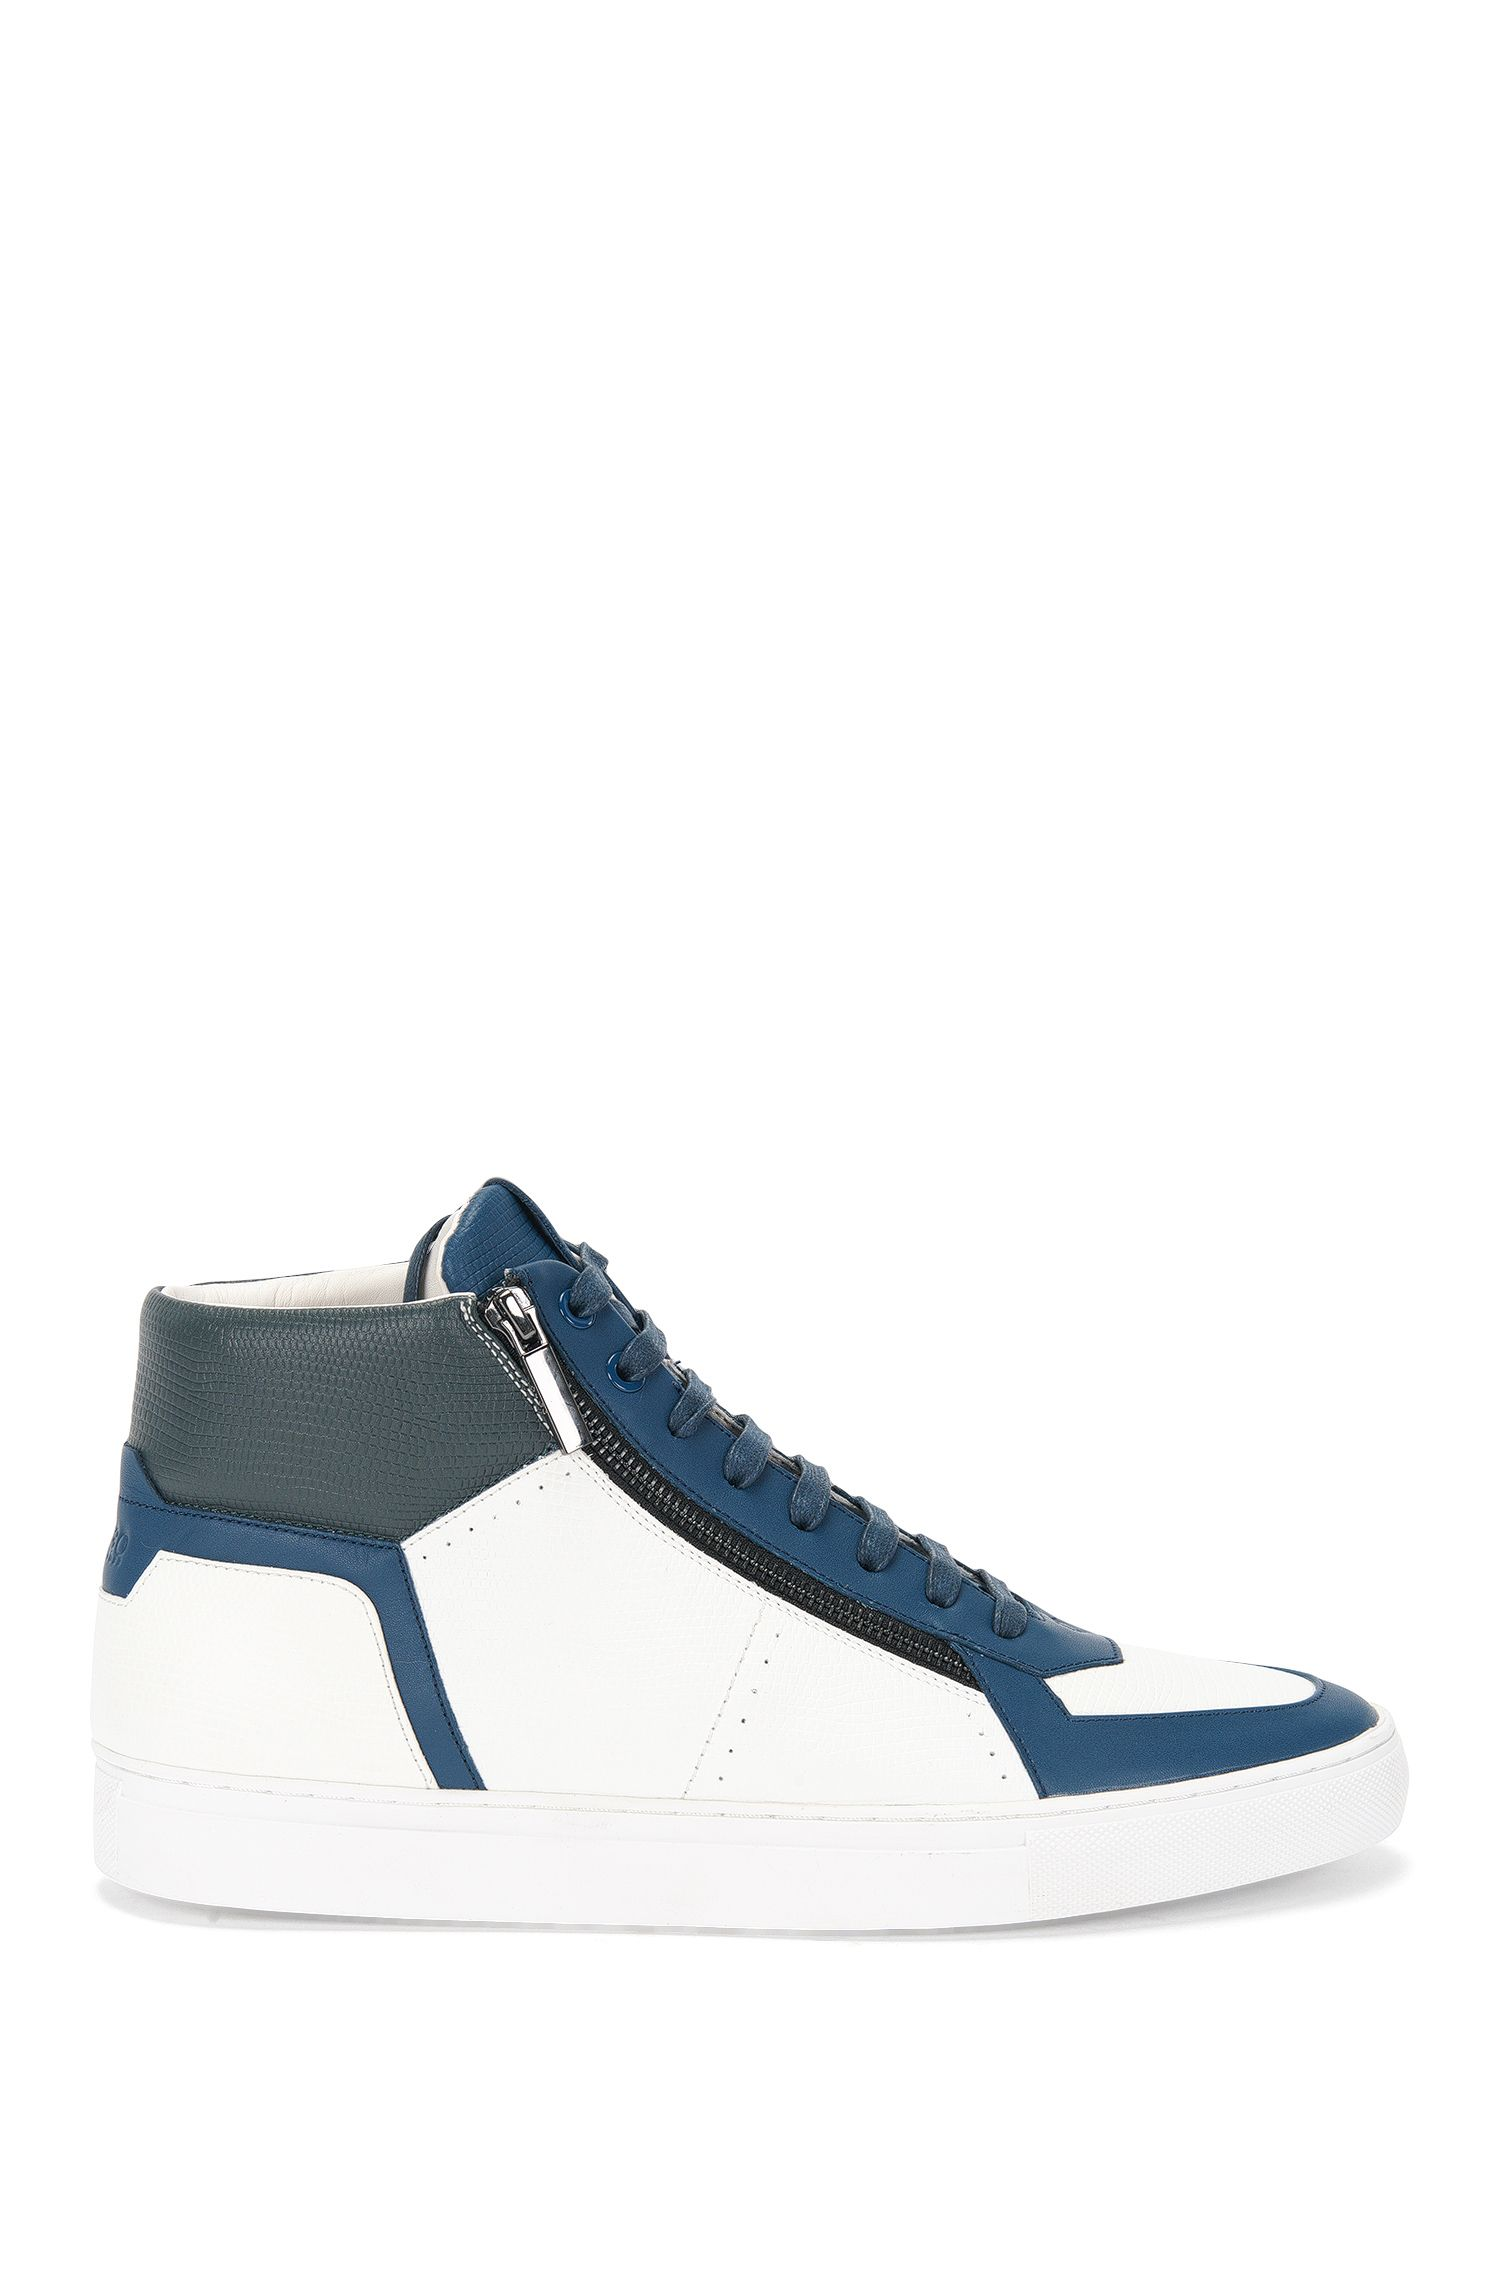 Leather High-Top Sneaker | Futurism Hito Exo